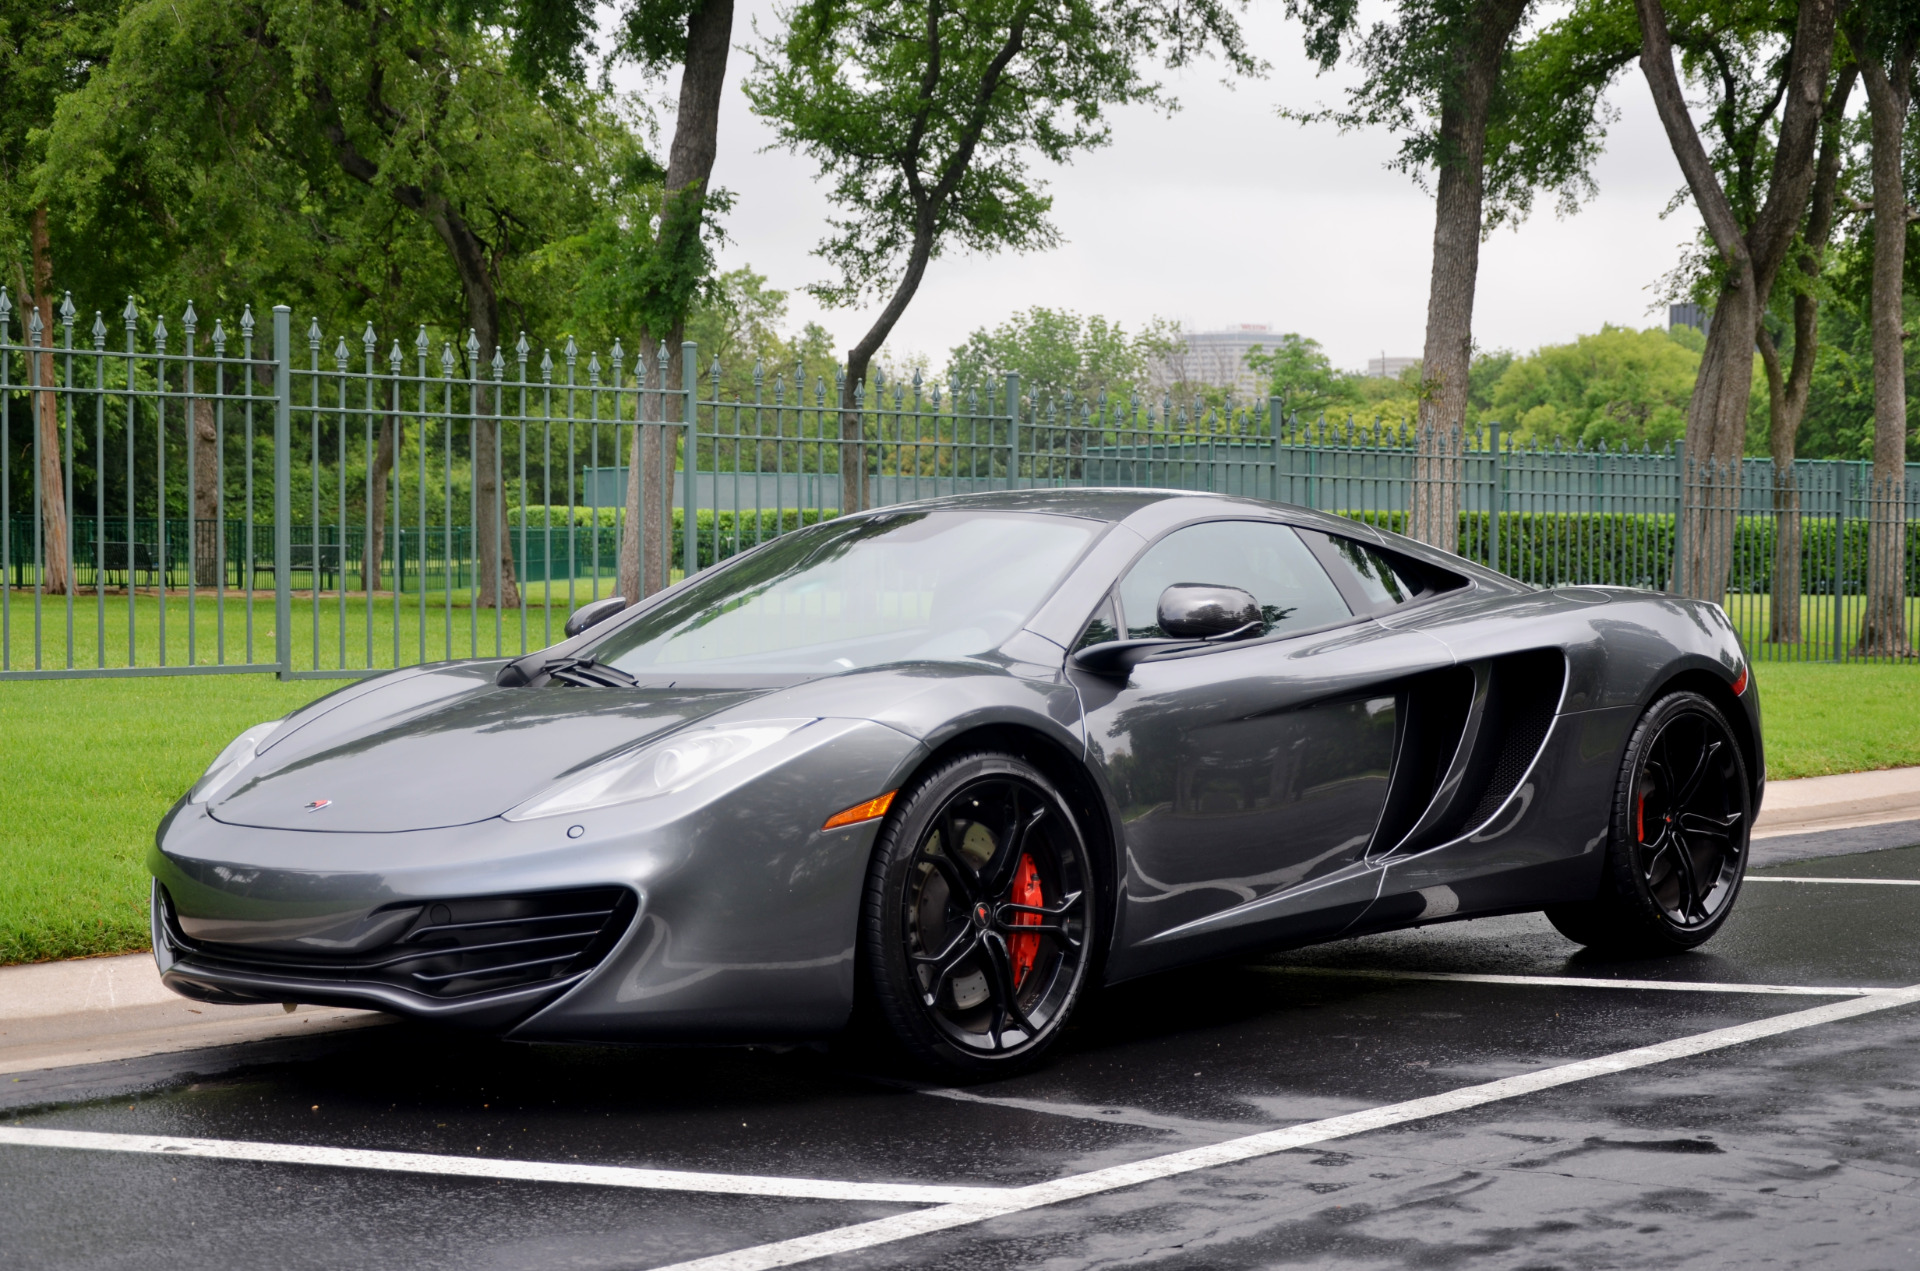 2012 McLaren MP4-12C for sale Sold Platinum Motorcars in Ft Worth TX 1